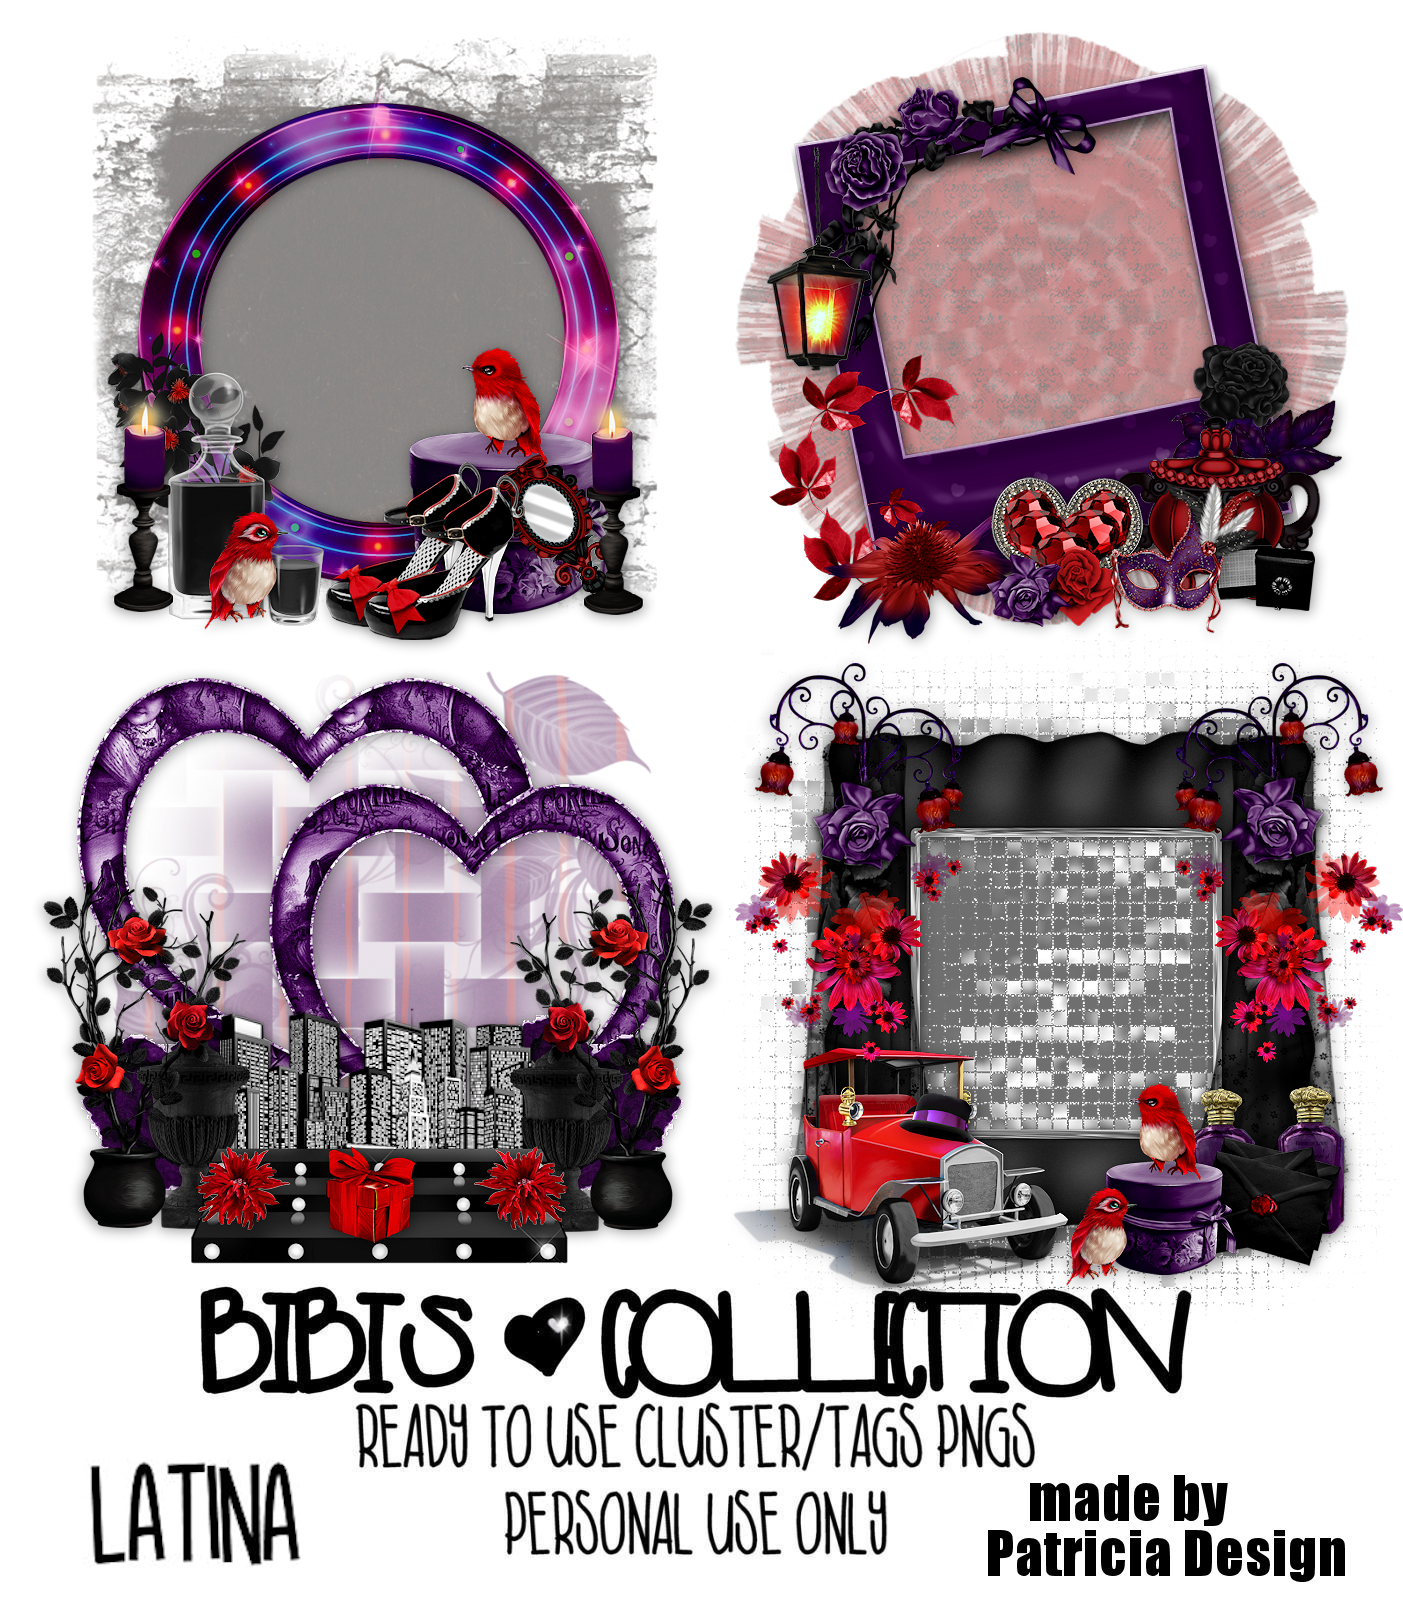 LATINA READY CLUSTER TAGS PNG BY PATRICIA